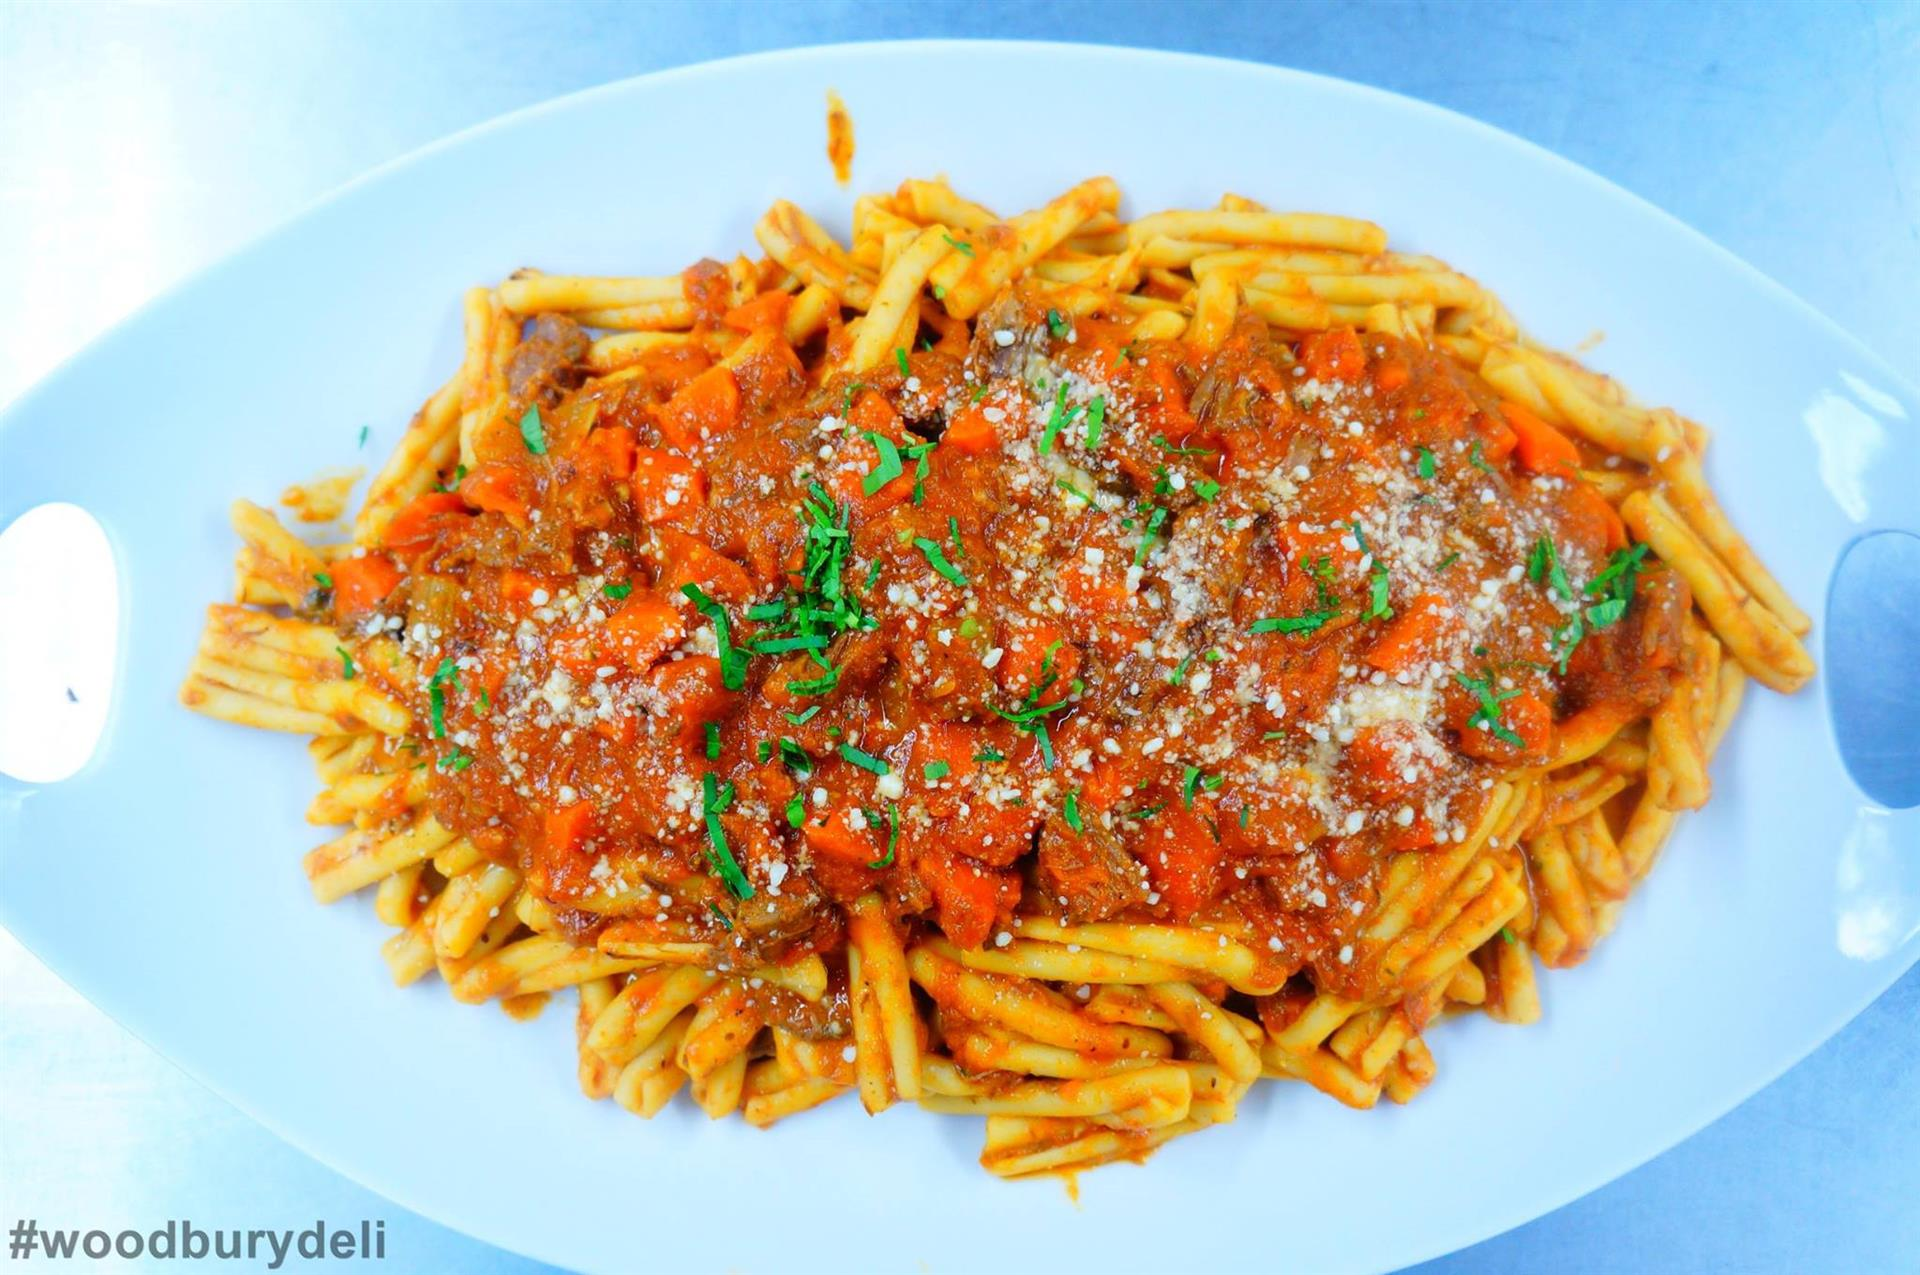 cavatelli pasta with meat sauce